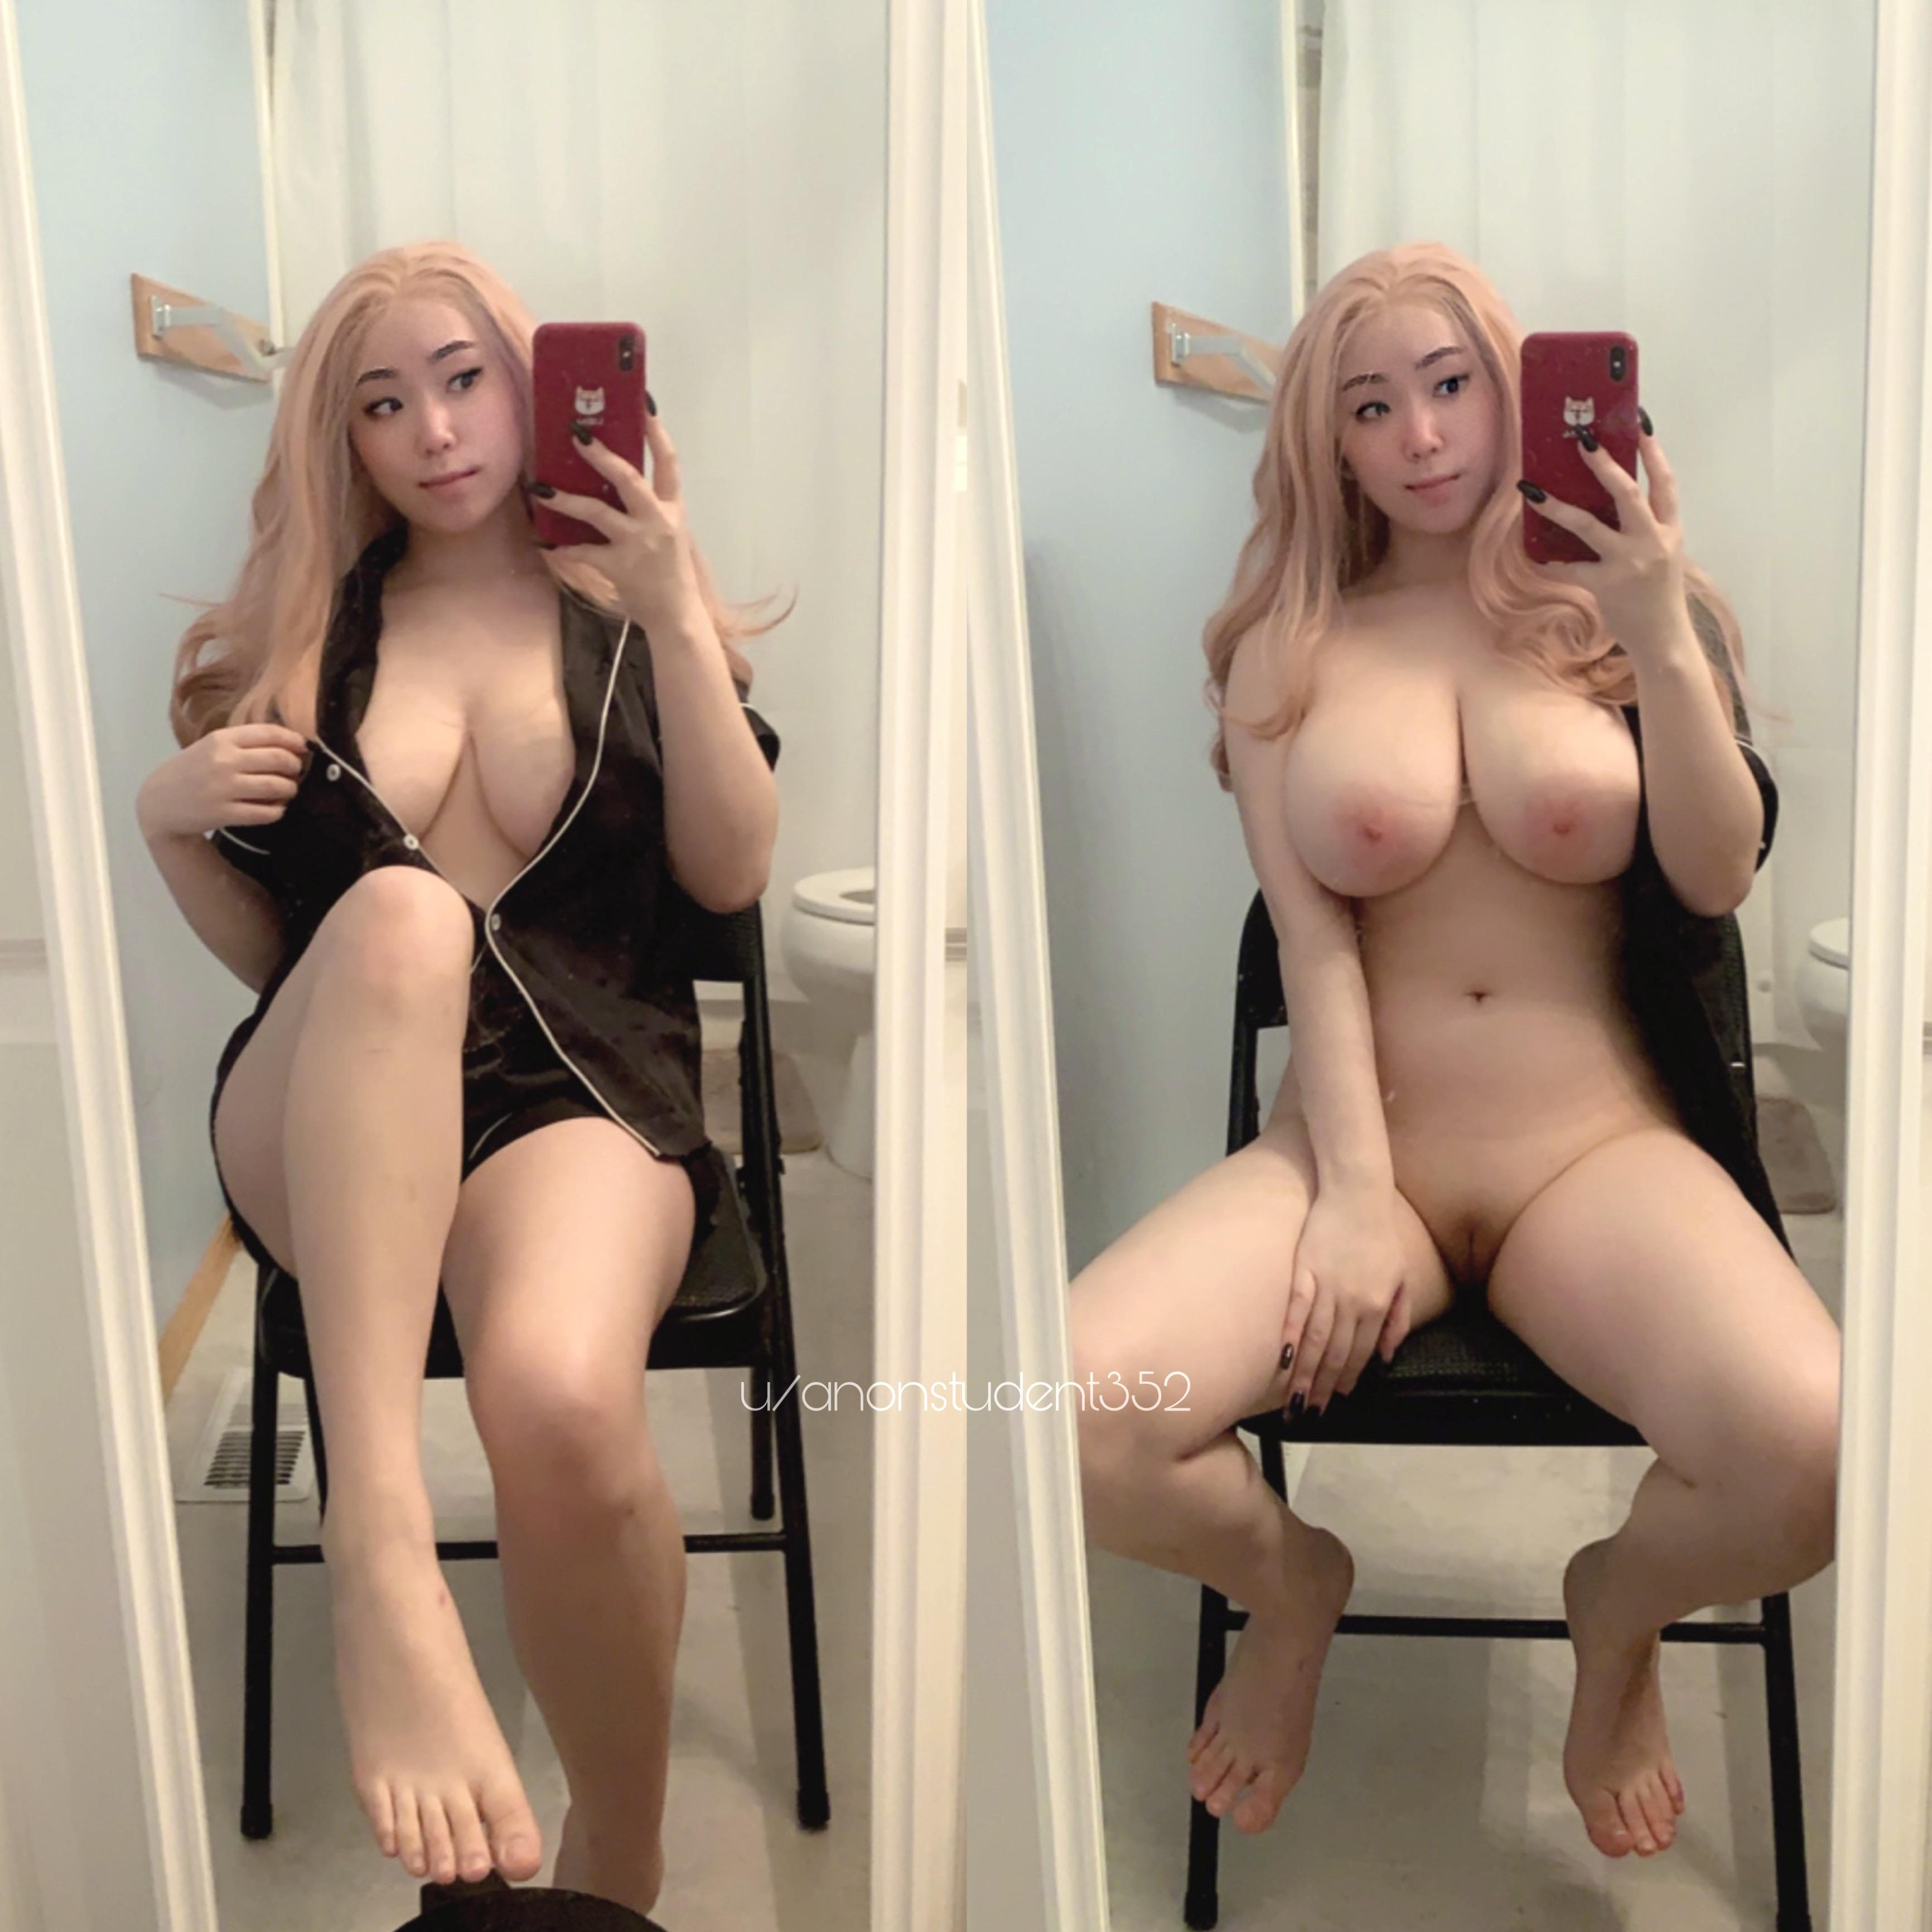 One of our naked asian pics called Would you come cuddle with me? [18 OC]